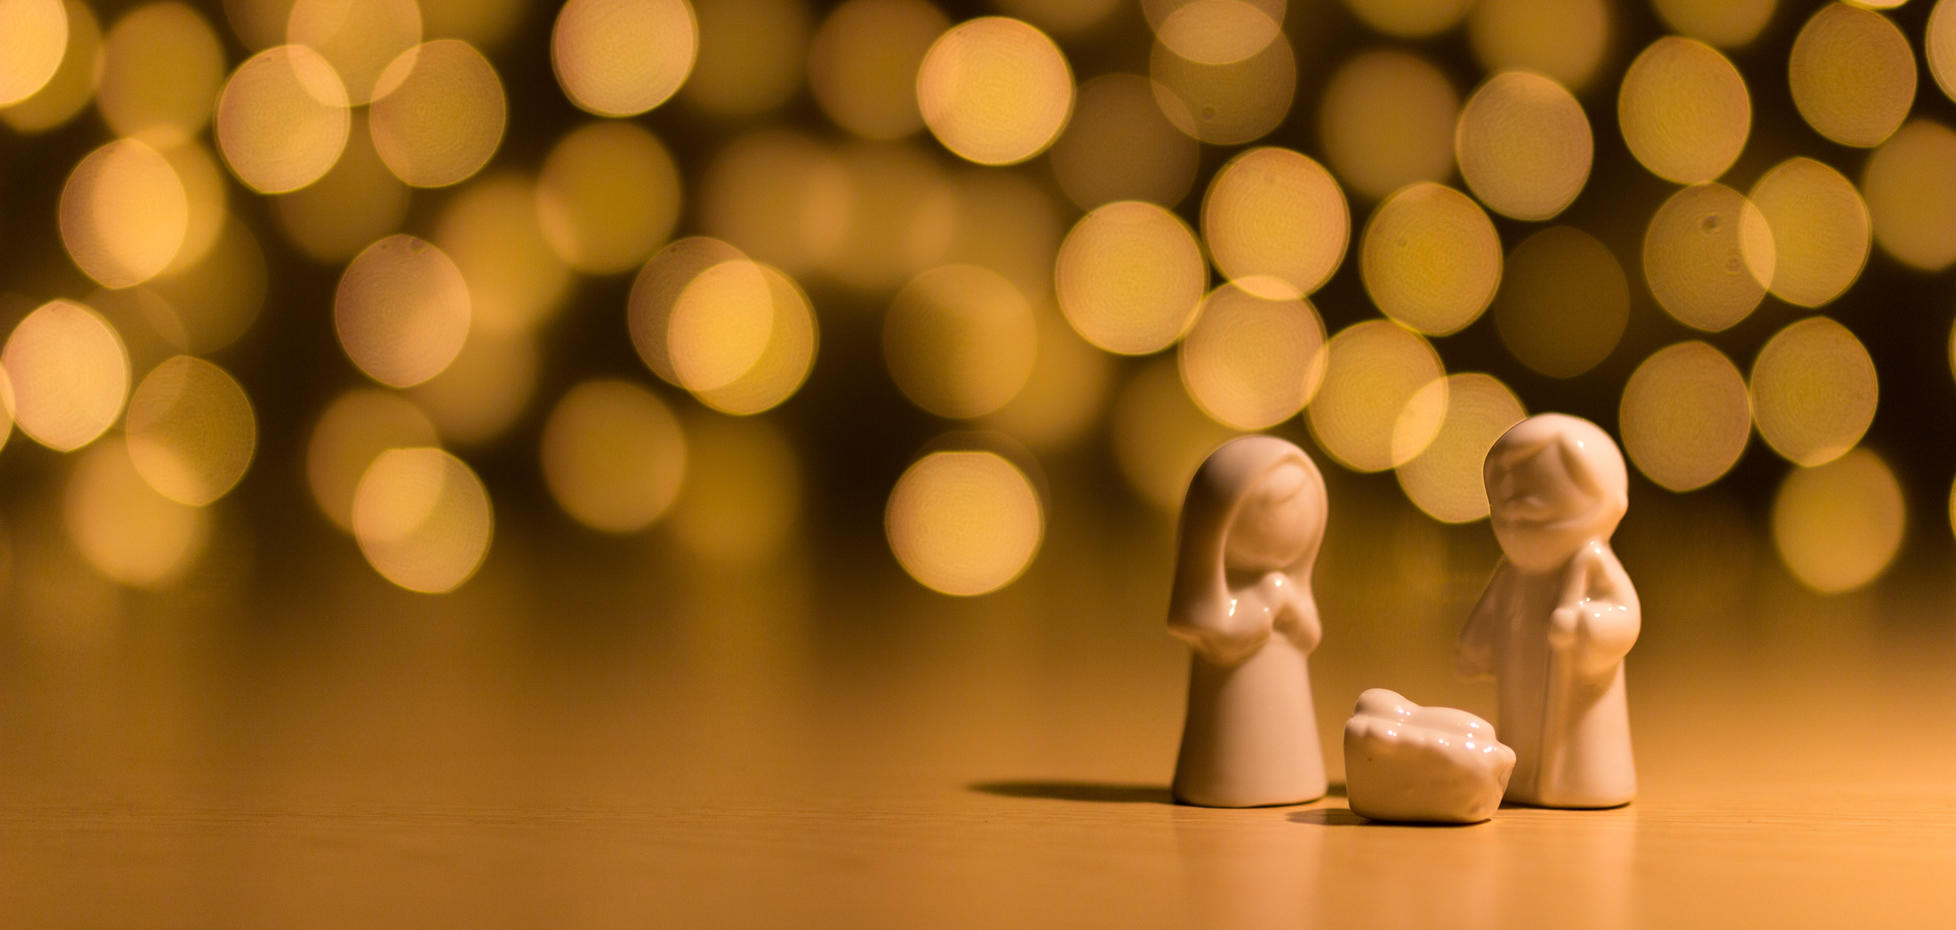 12 Tips for Evangelism this Christmas